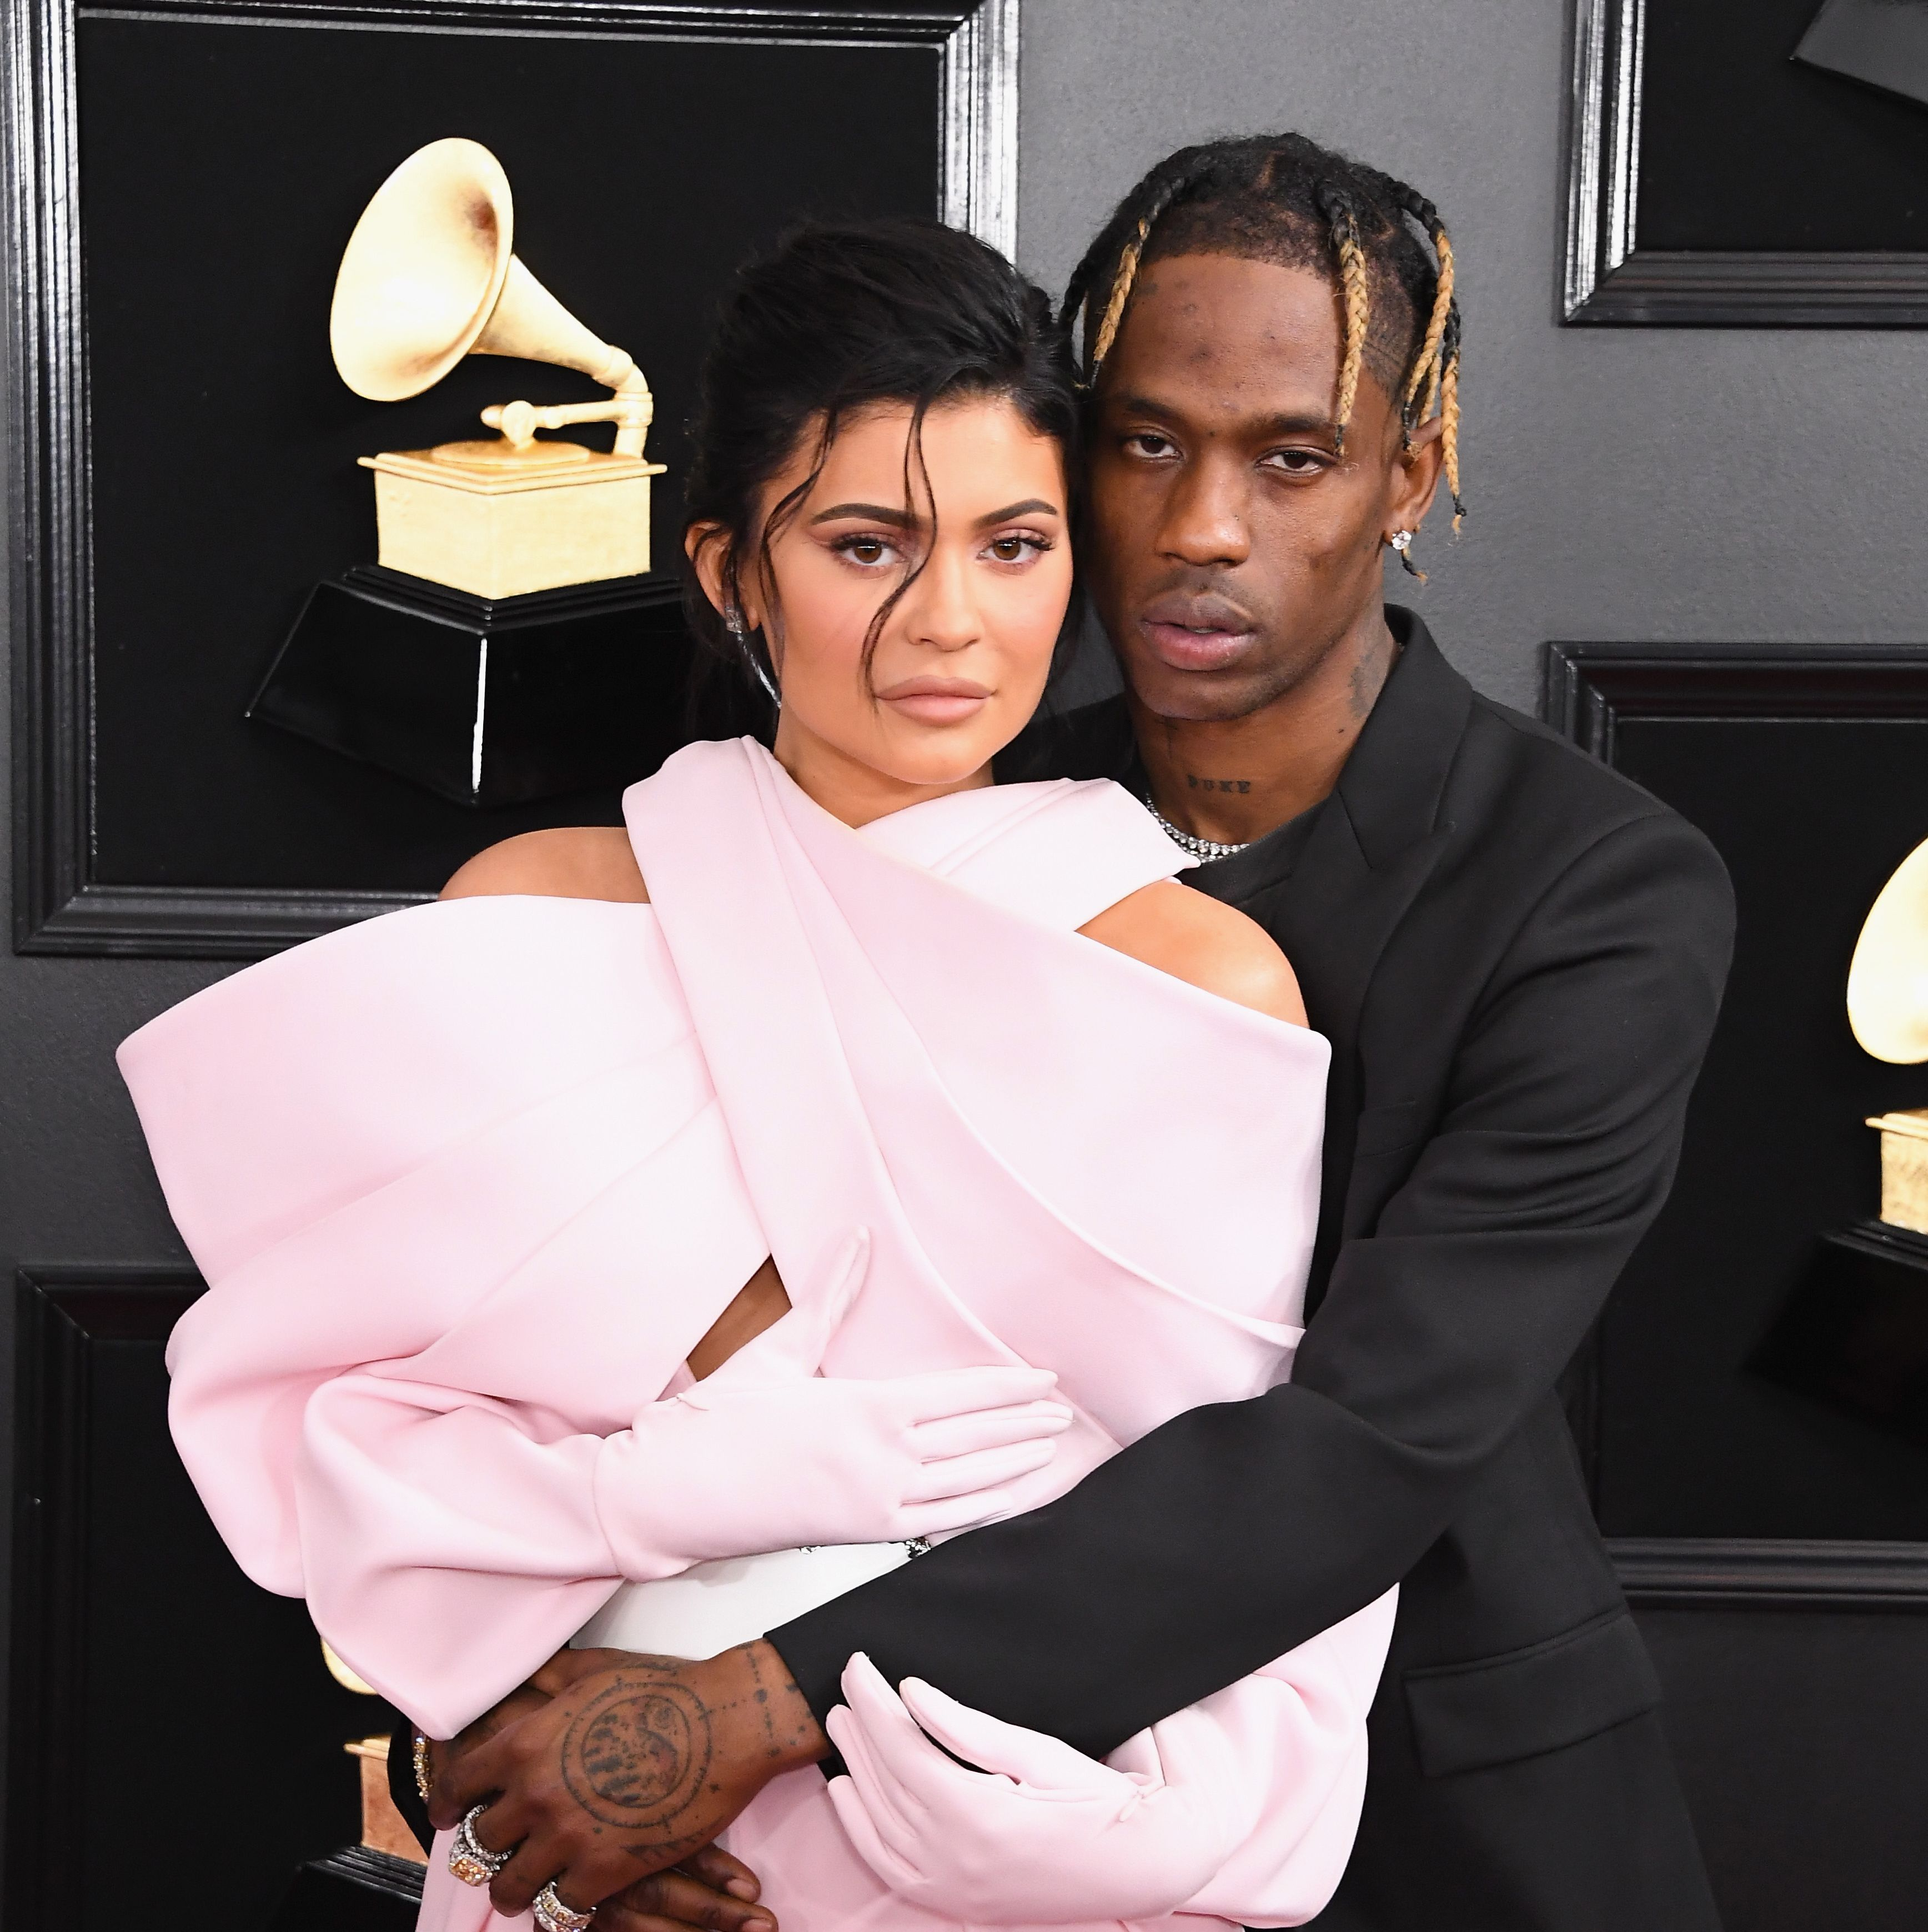 Kylie Jenner and Travis Scott Are Planning a Family Vacation Together Amid Cheating Rumors